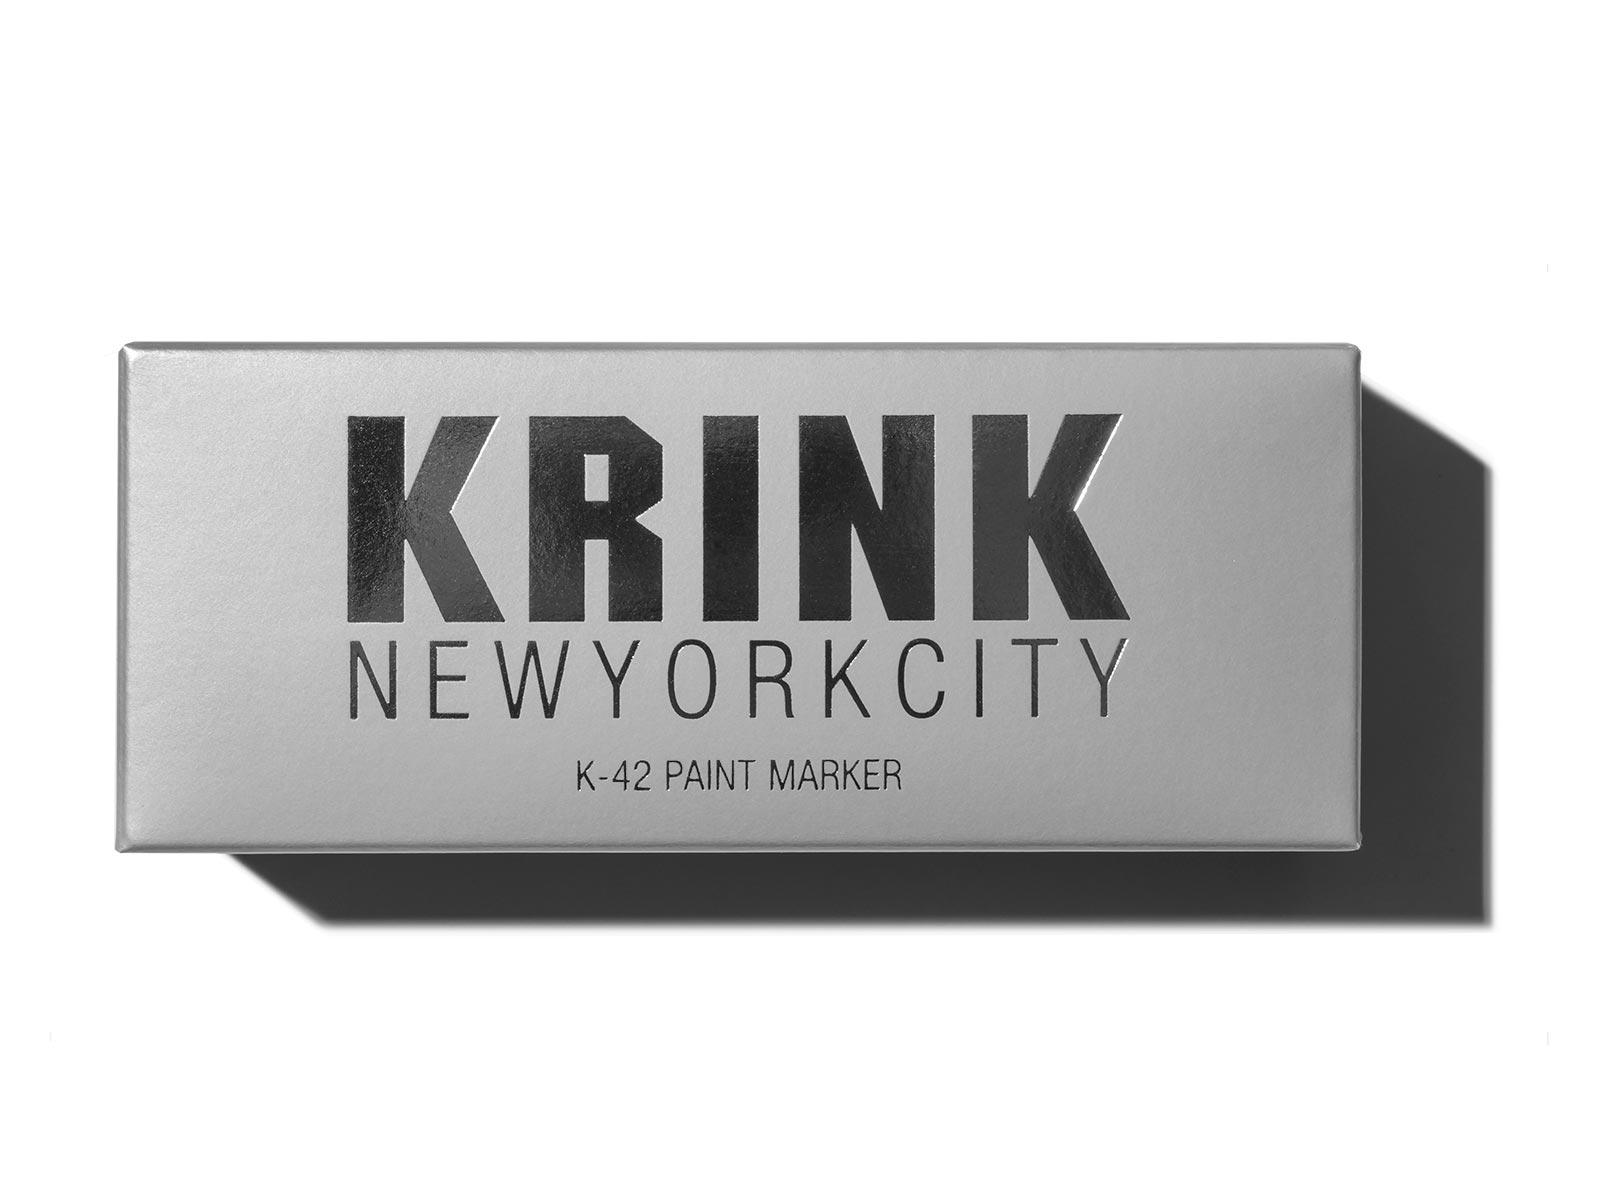 Krink K-42 Paint Marker Box Set